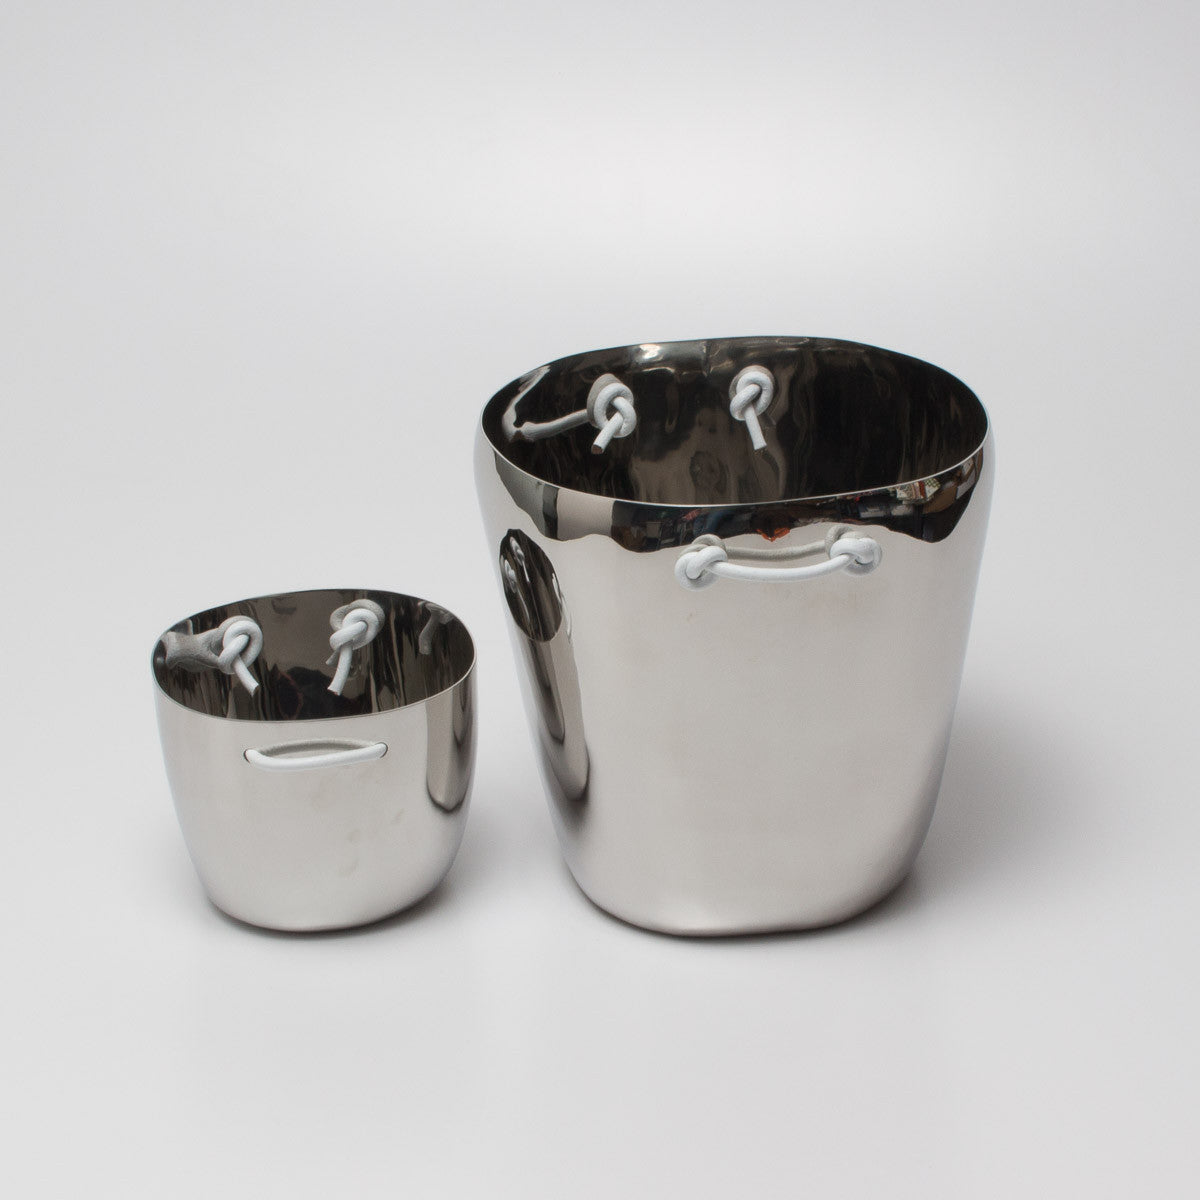 Stainless Steel Bucket with Leather Handles